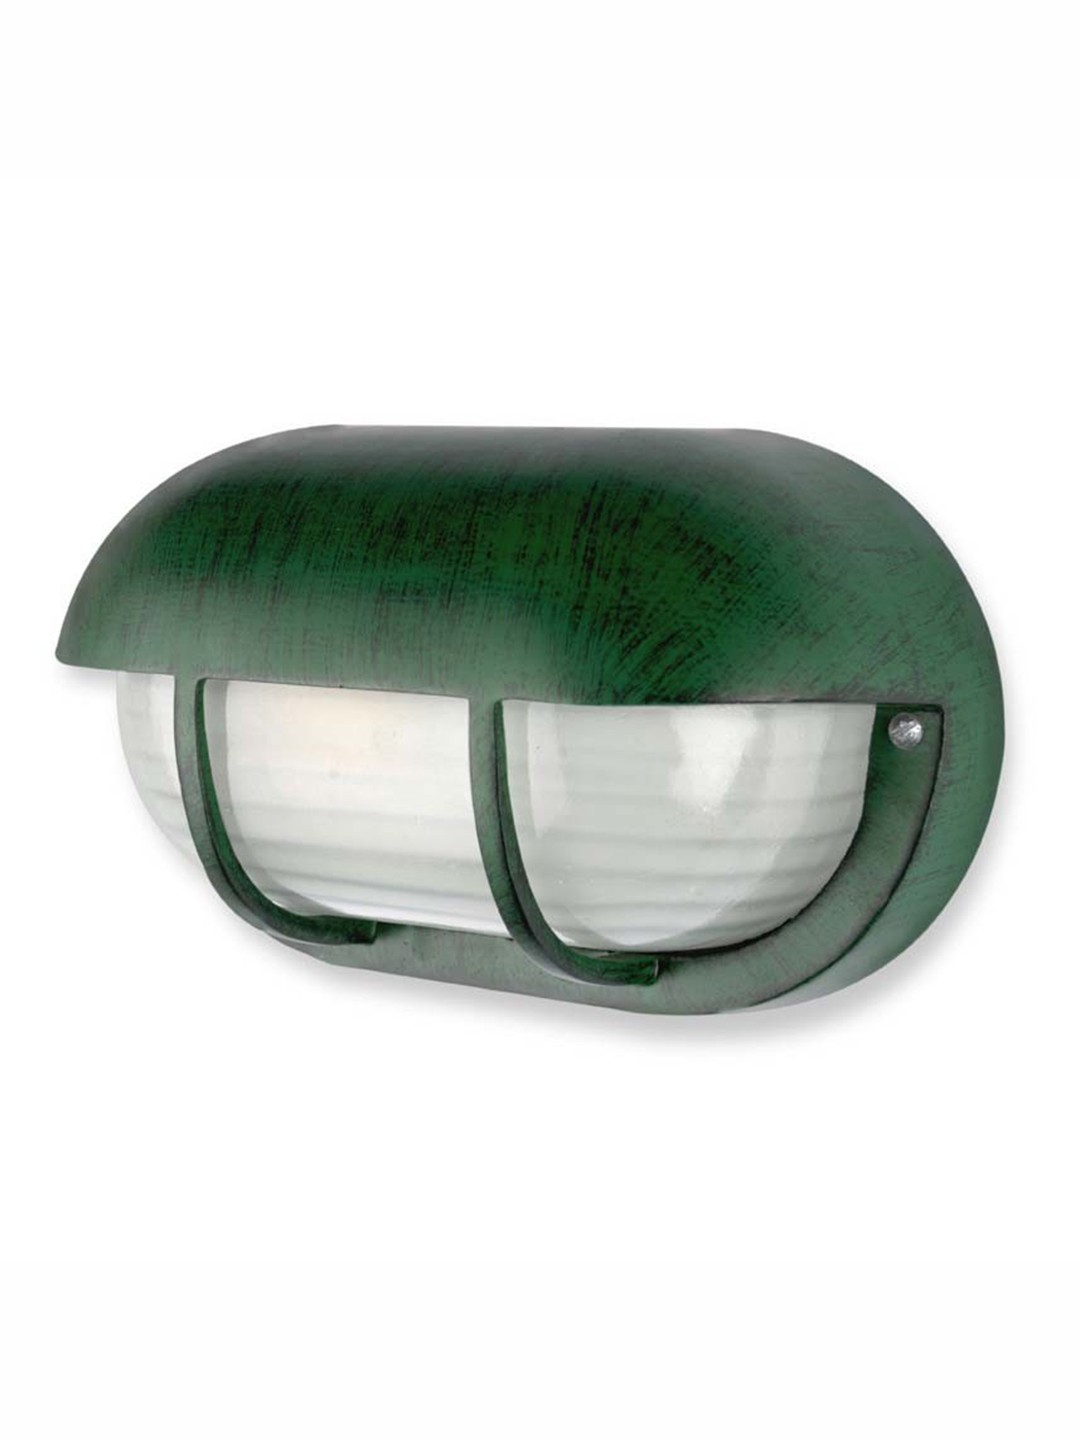 Antique Green Outdoor Bulkhead Light